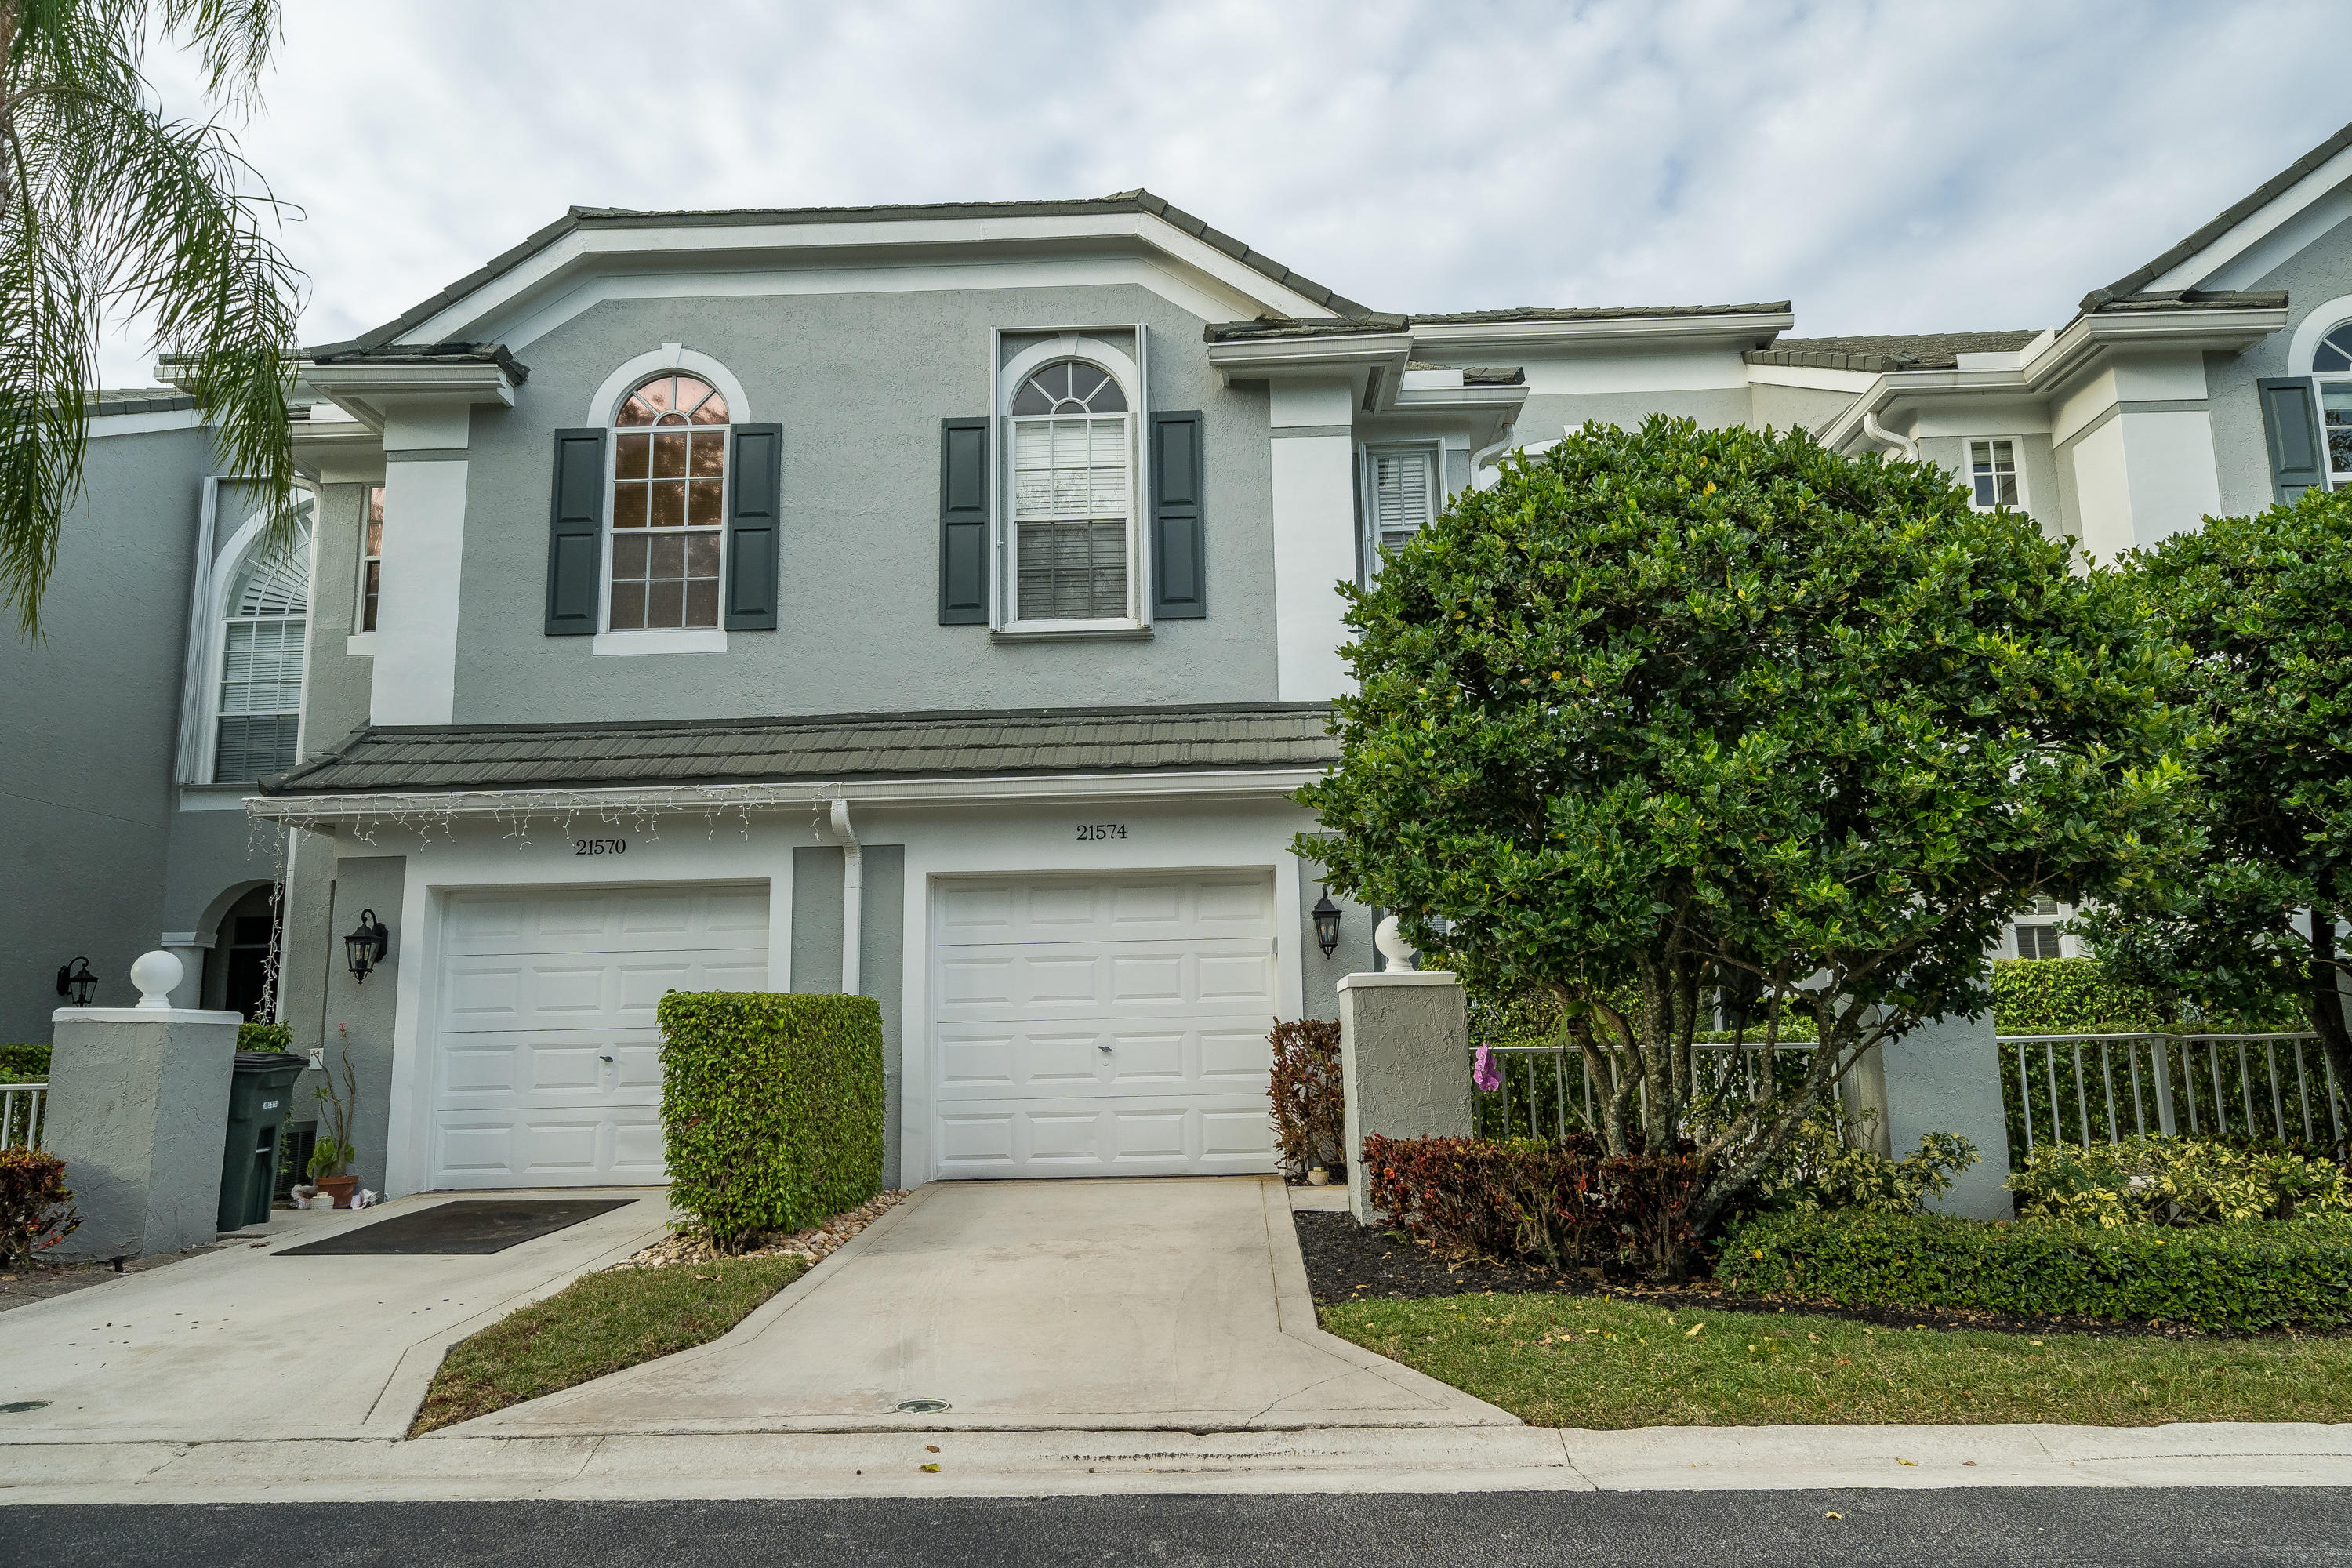 Home for sale in St Andrews Grand Boca Raton Florida